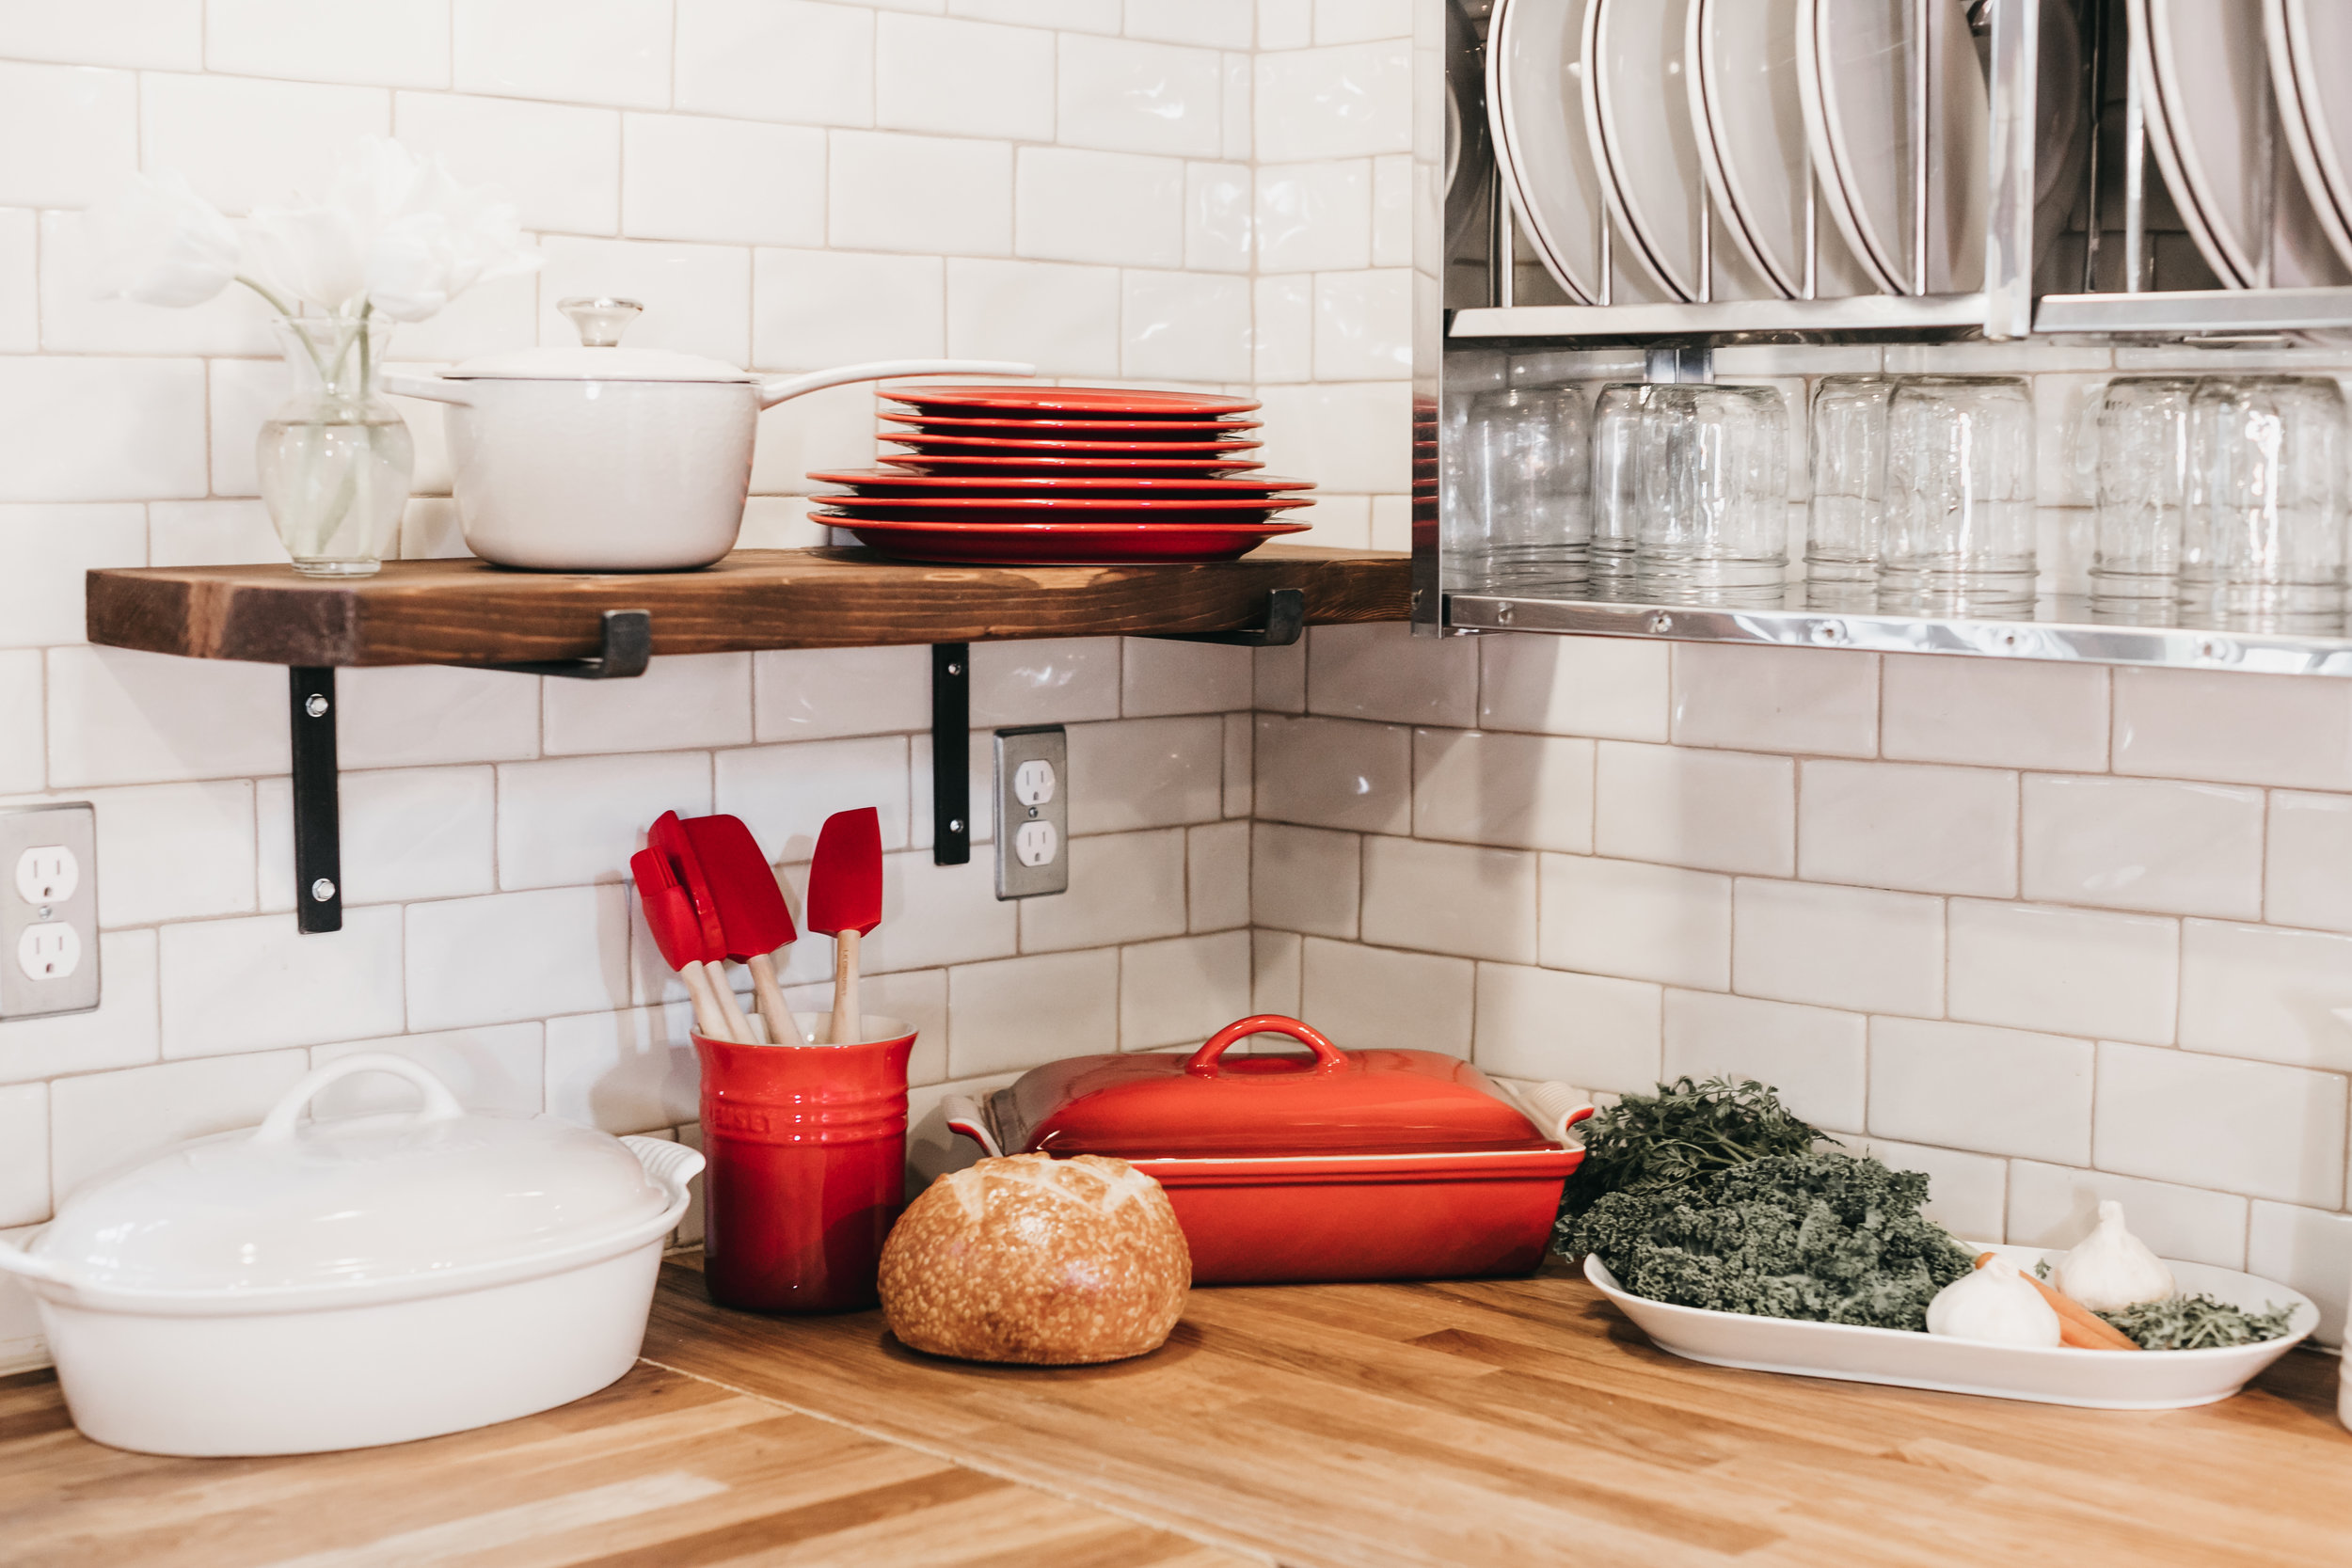 10 Items To Get Rid Of In Your Kitchen - Give your cupboards a good cleaning